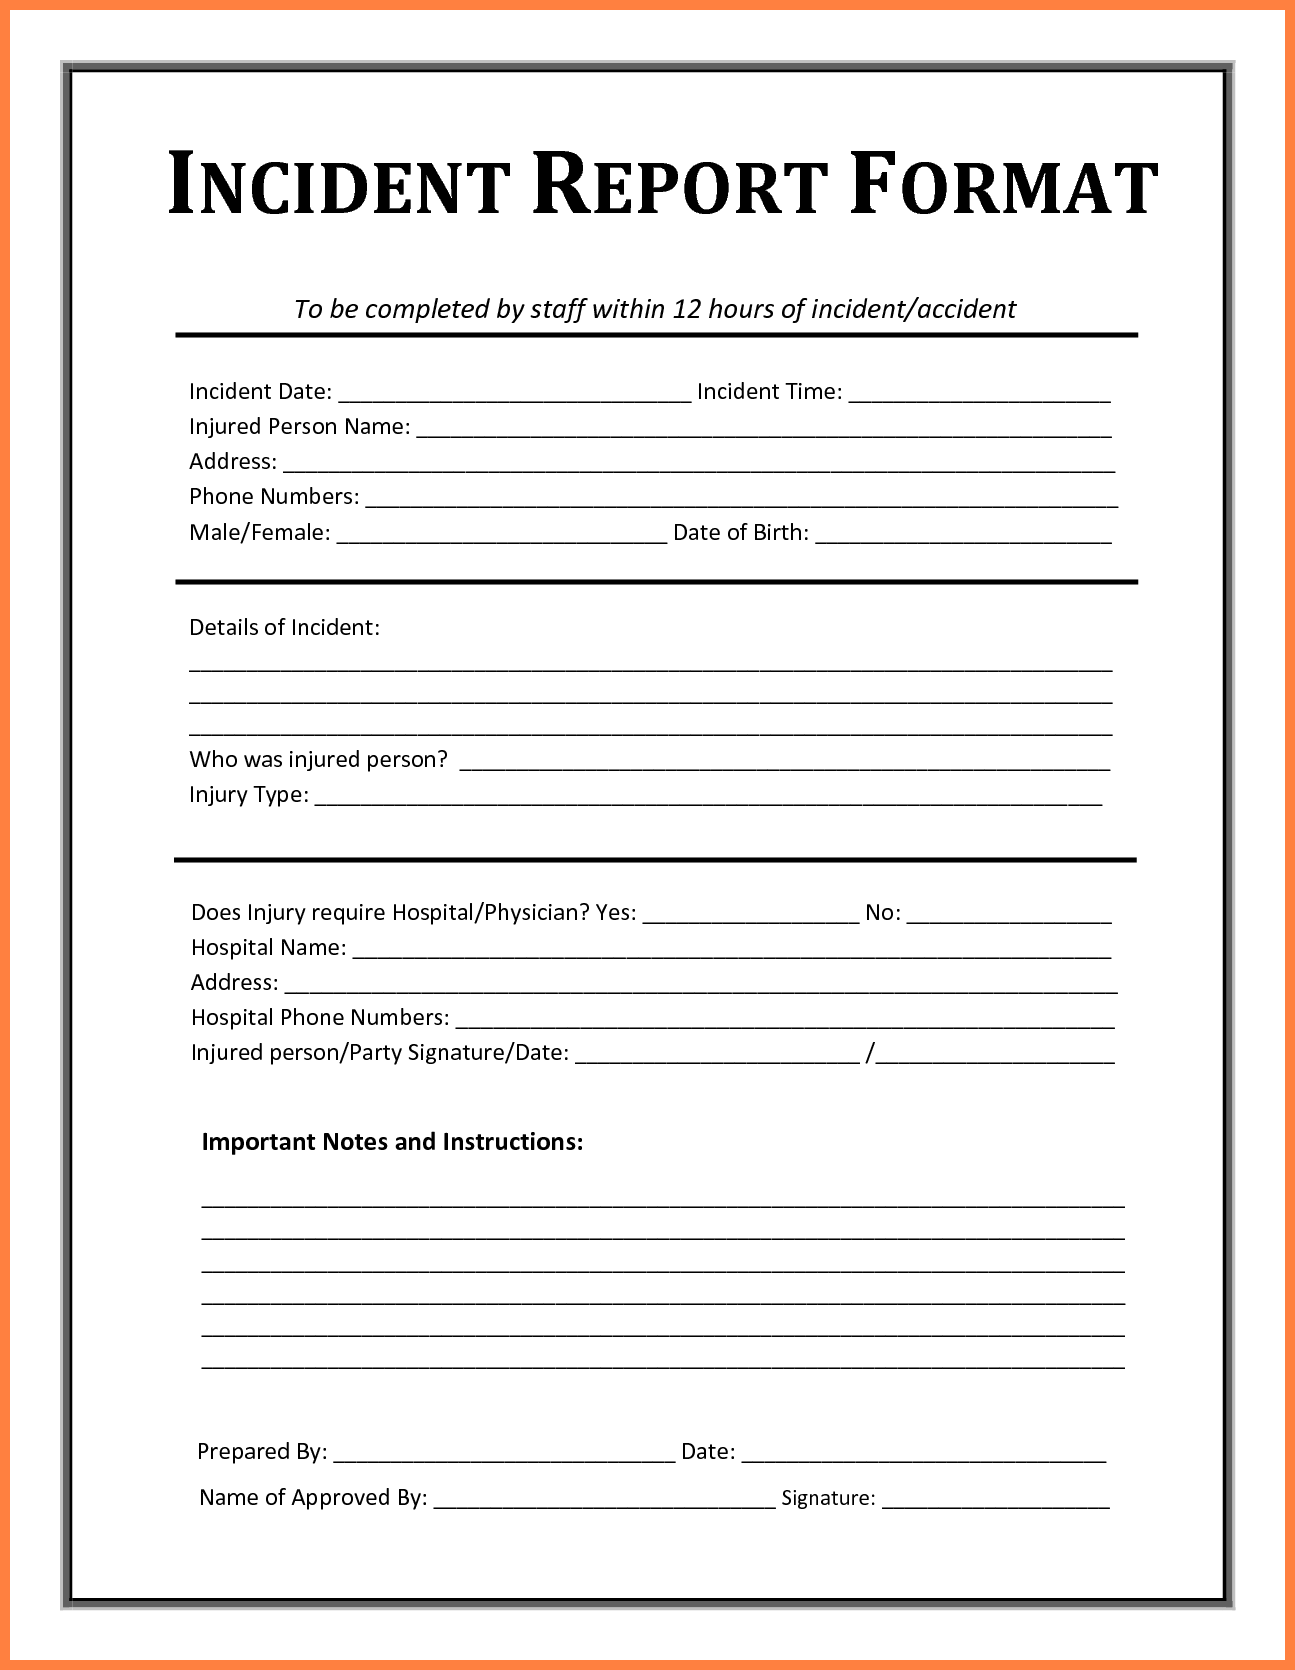 safety incident report form template   Maggi.locustdesign.co